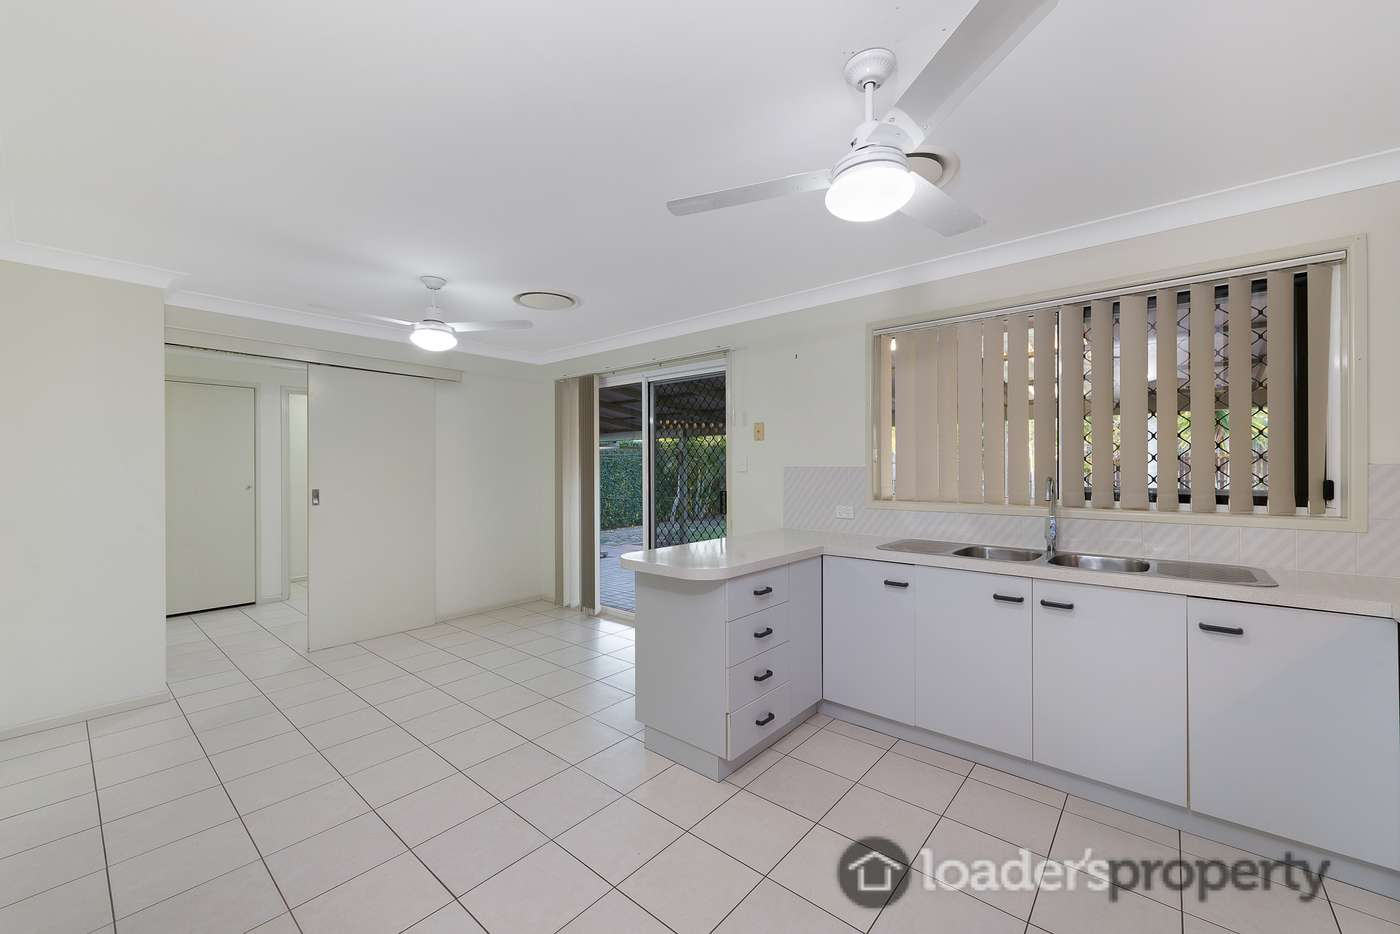 Seventh view of Homely house listing, 14 Kinghorn St, Kalkie QLD 4670